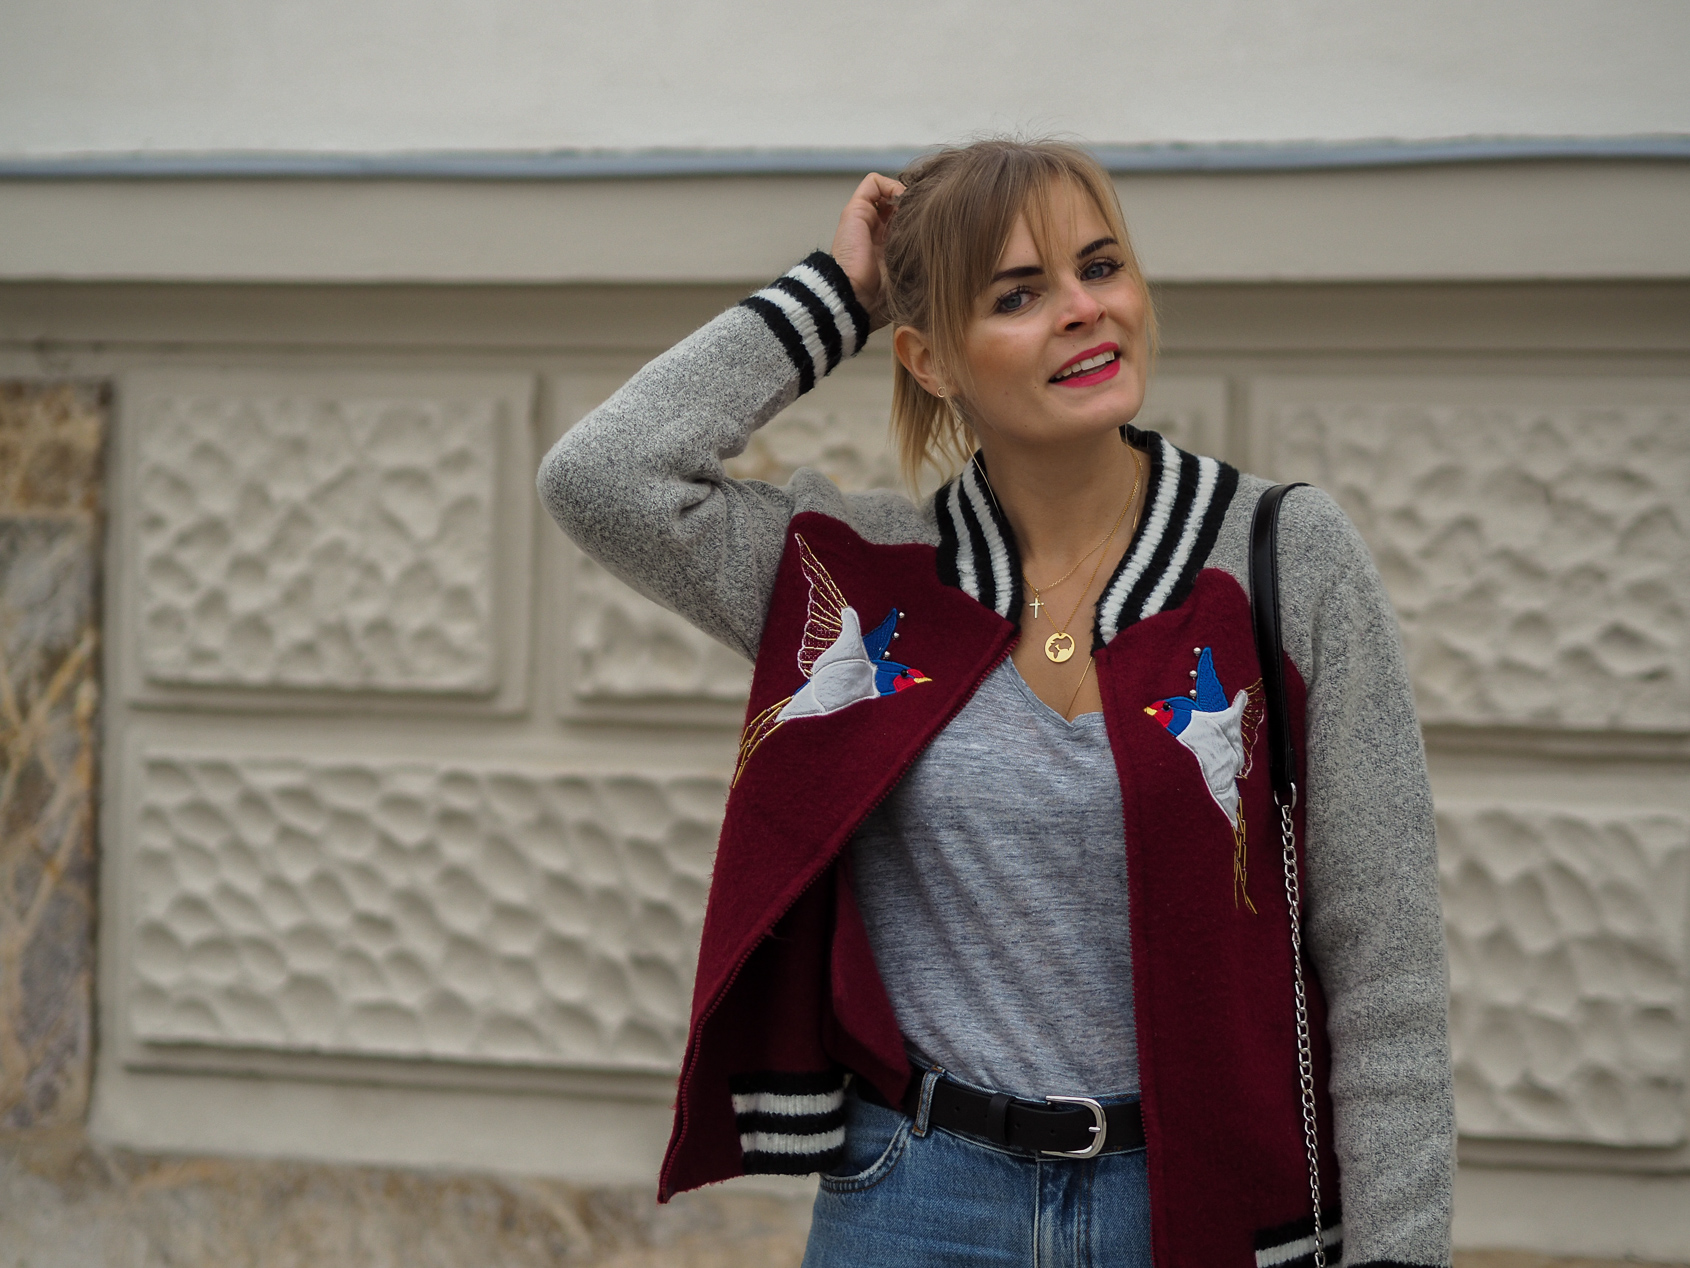 Mom Jeans, College Jacke, Converse, Streetstyle, Herbstlook, Fashionblogger